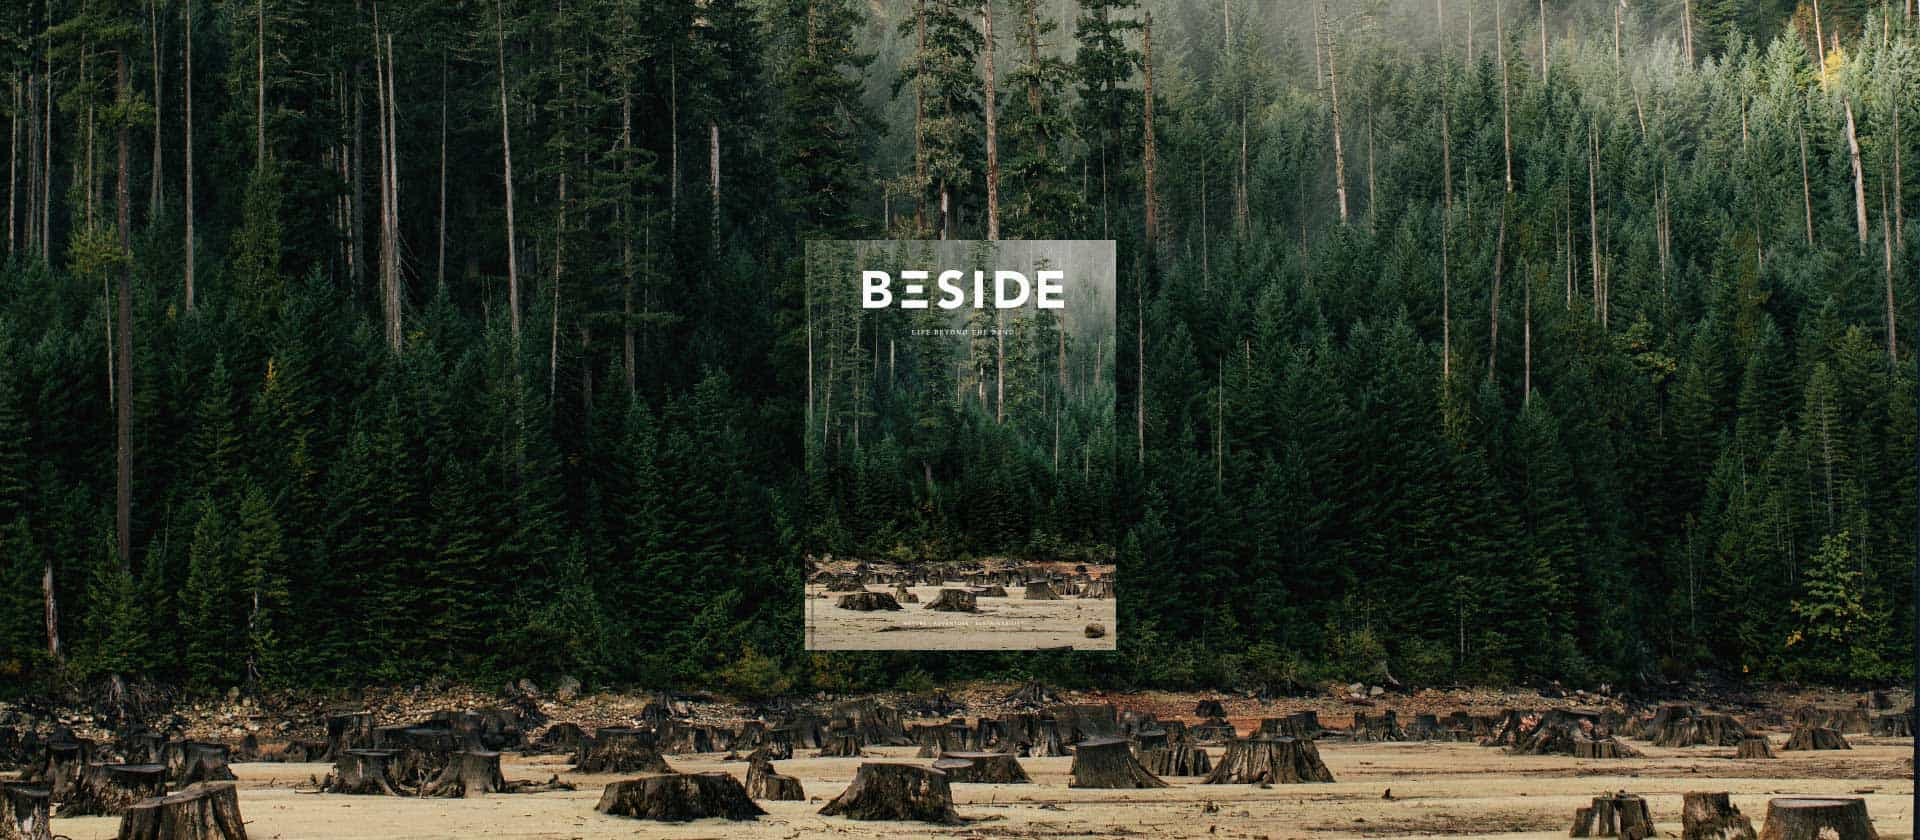 . Discover the Canadian Outdoor Magazine, BESIDE